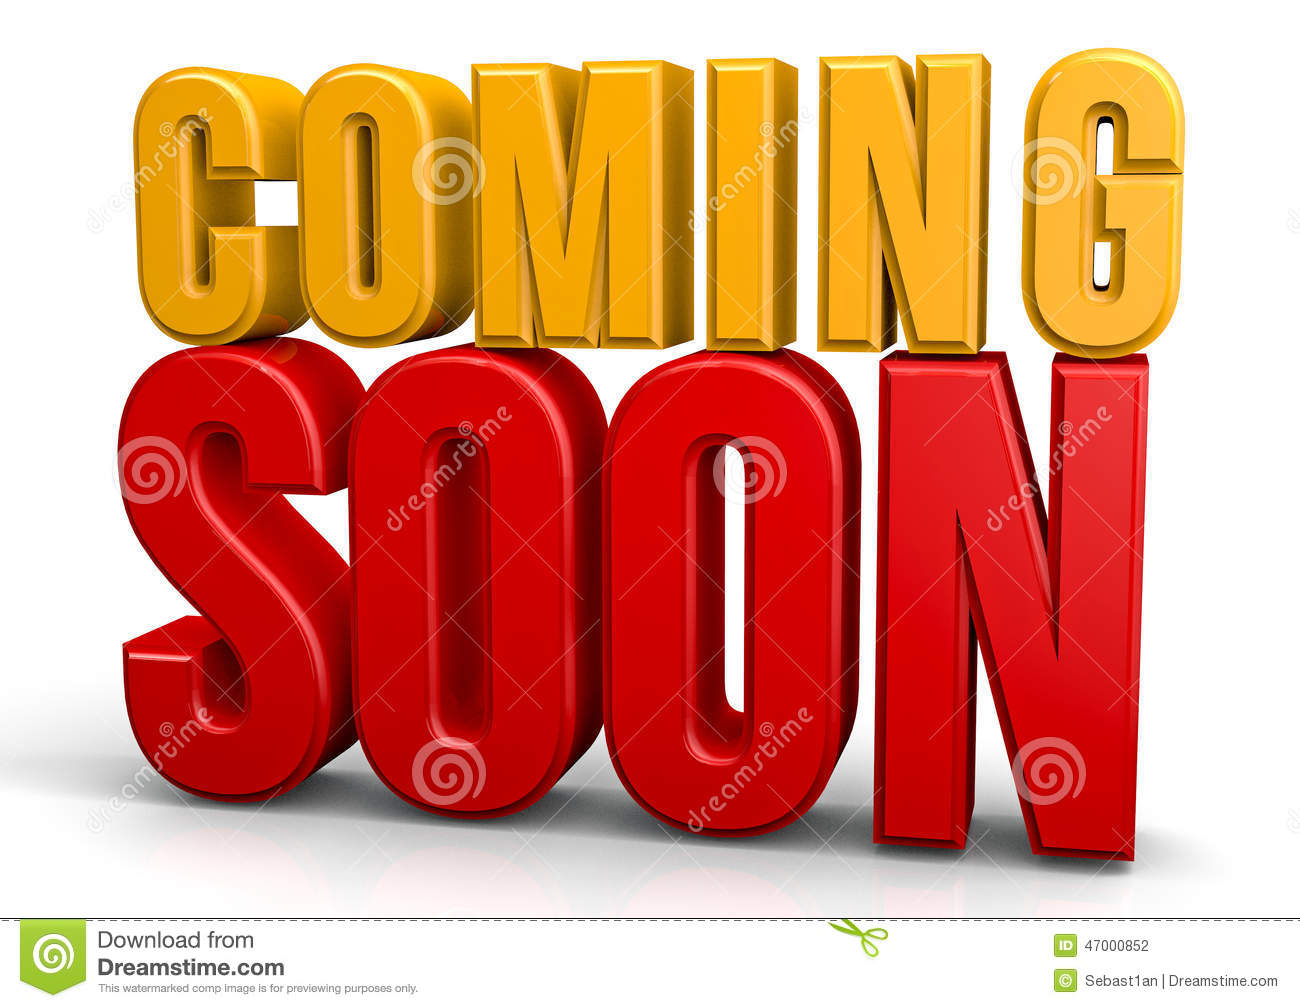 Coming Soon Sign Stock Photos, Images, & Pictures - 1,188 Images